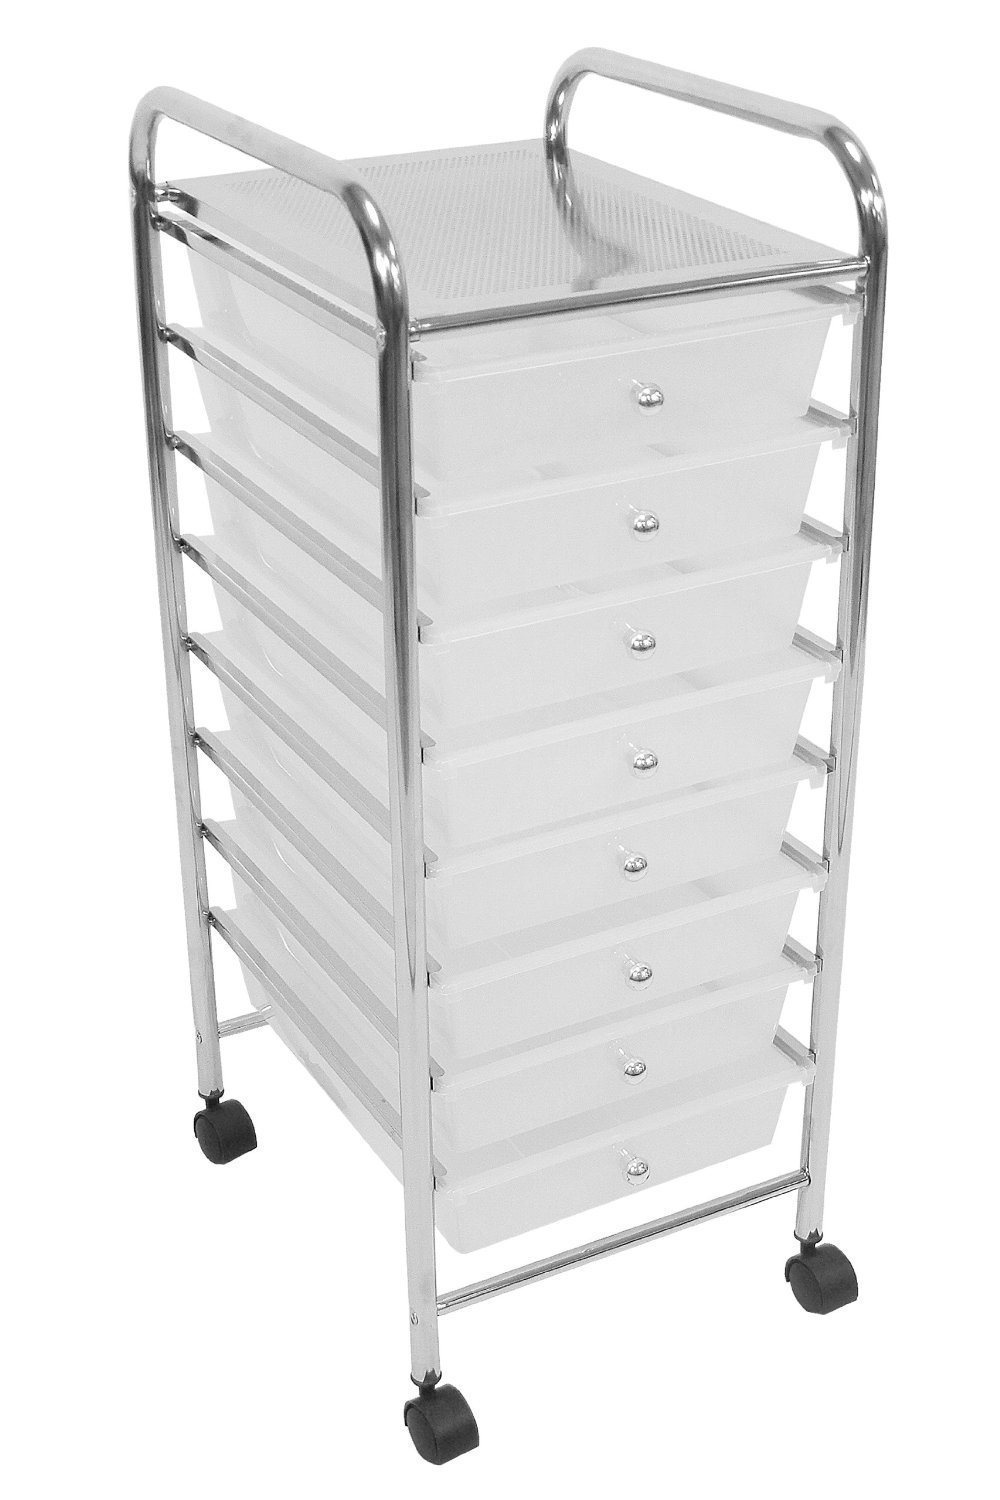 ASPECT Aspen 8-Tier Drawers Home//Office Storage Trolley-Size:33 W D x83 Multi x39 .with Chrome Frame H